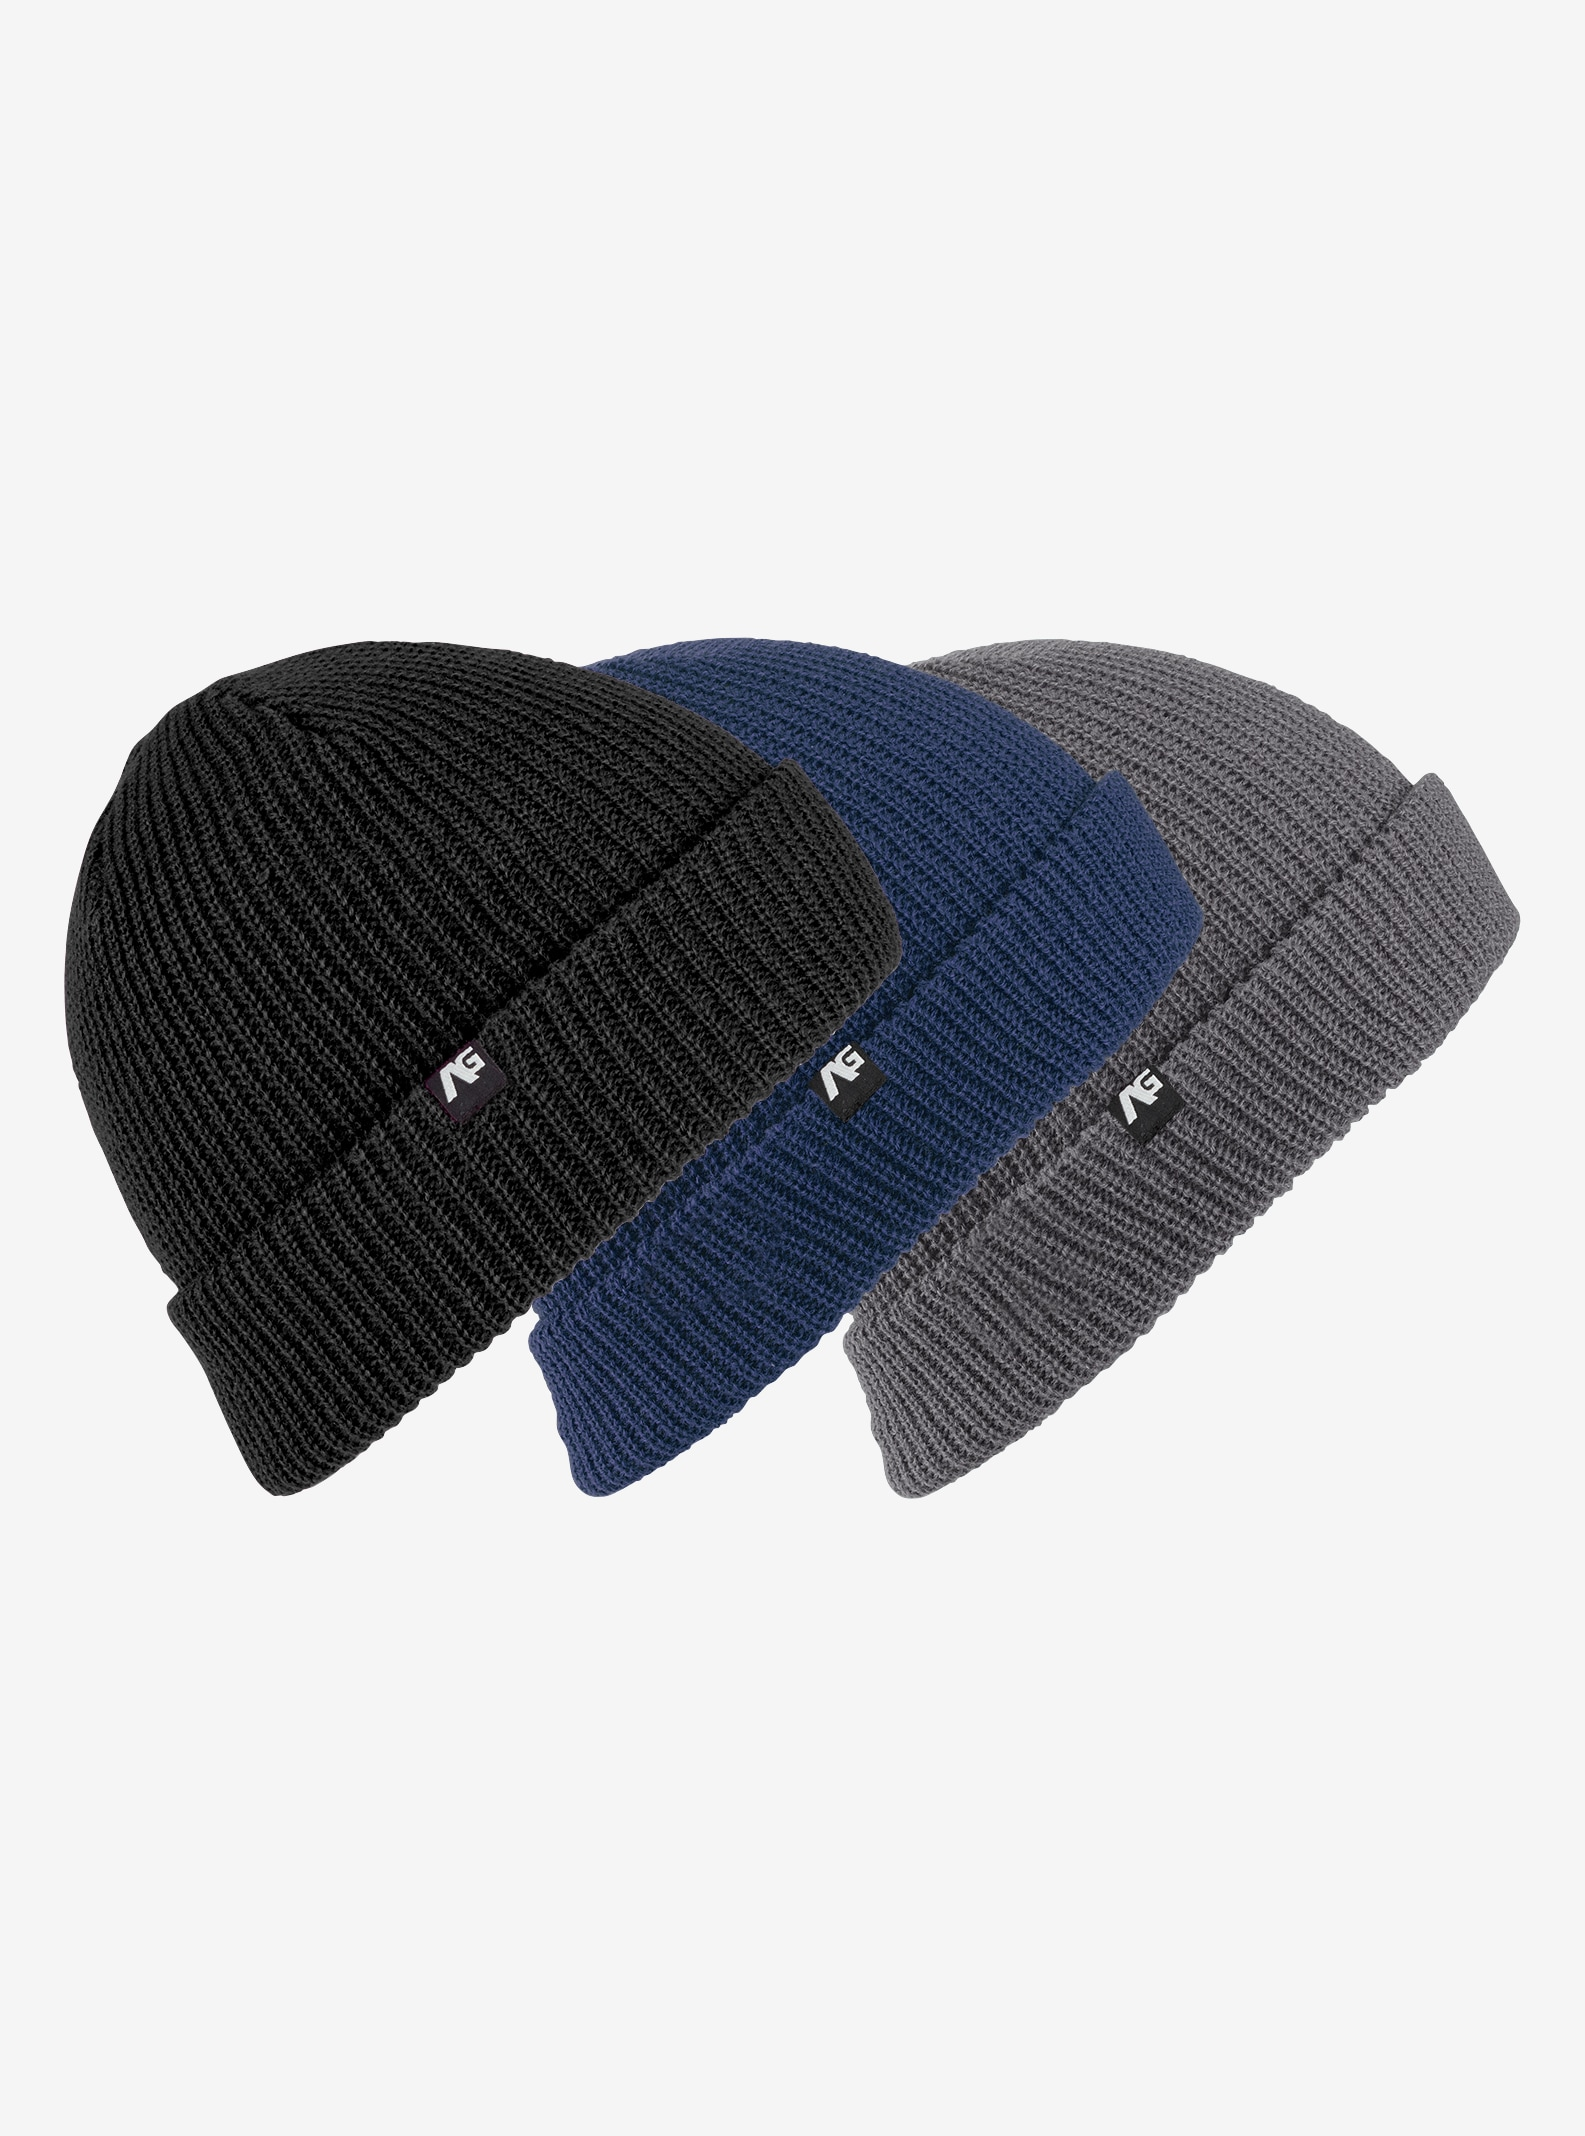 Men's Analog Beanie 3-Pack shown in True Black / Eclipse / Heathers